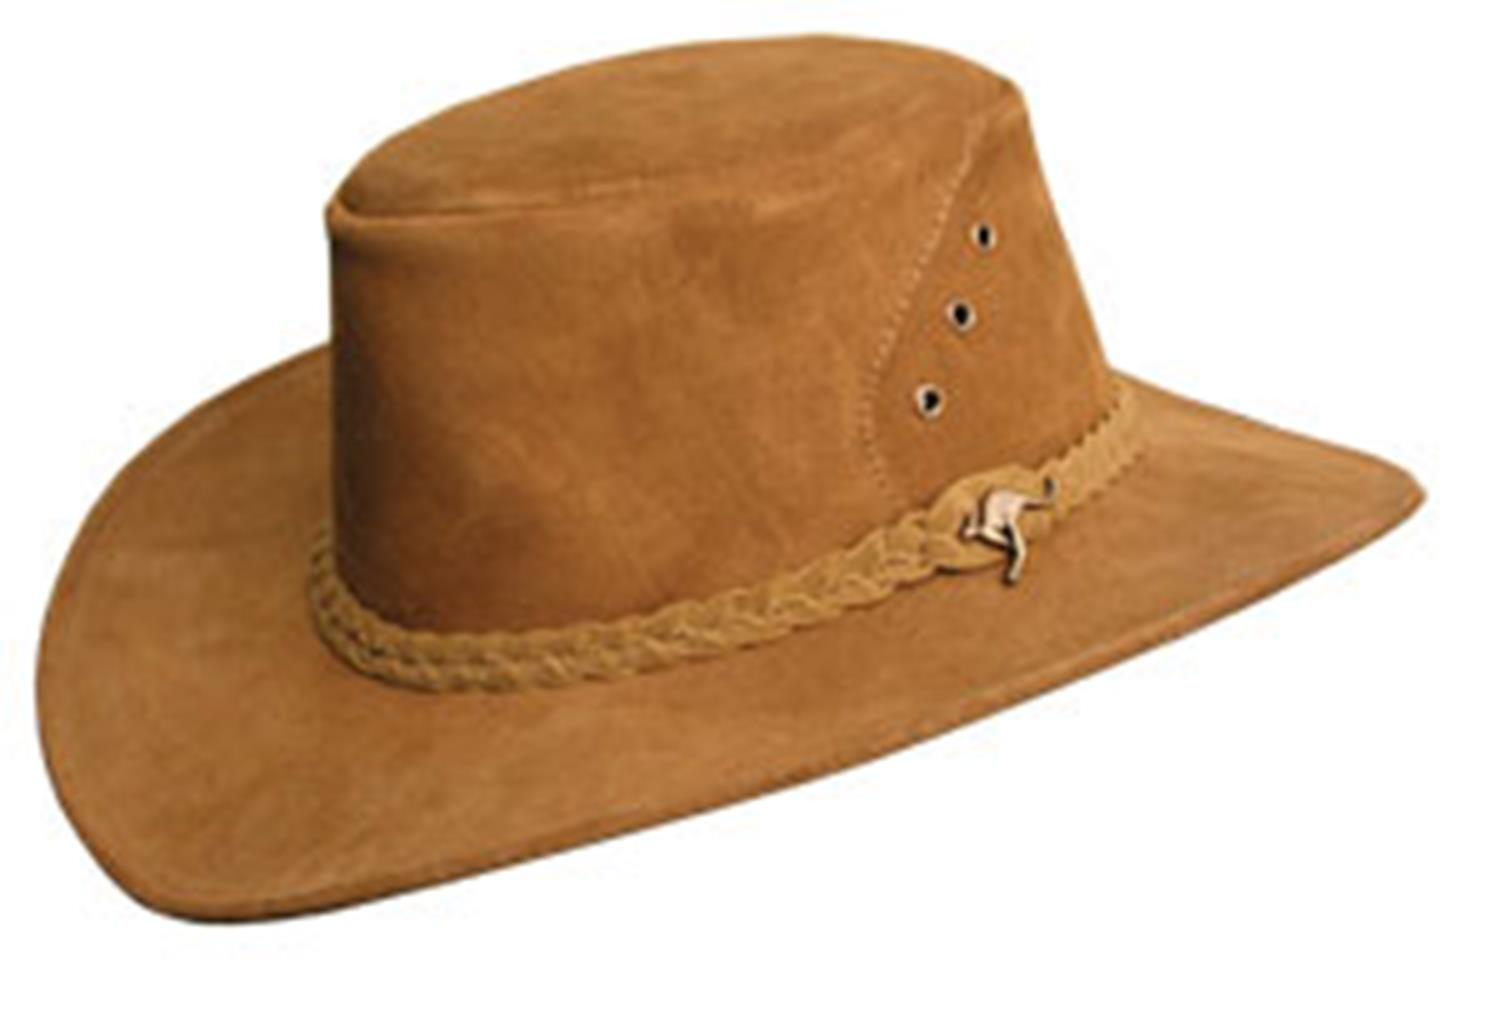 Kakadu ALICE HAT in Rust Suede Leather